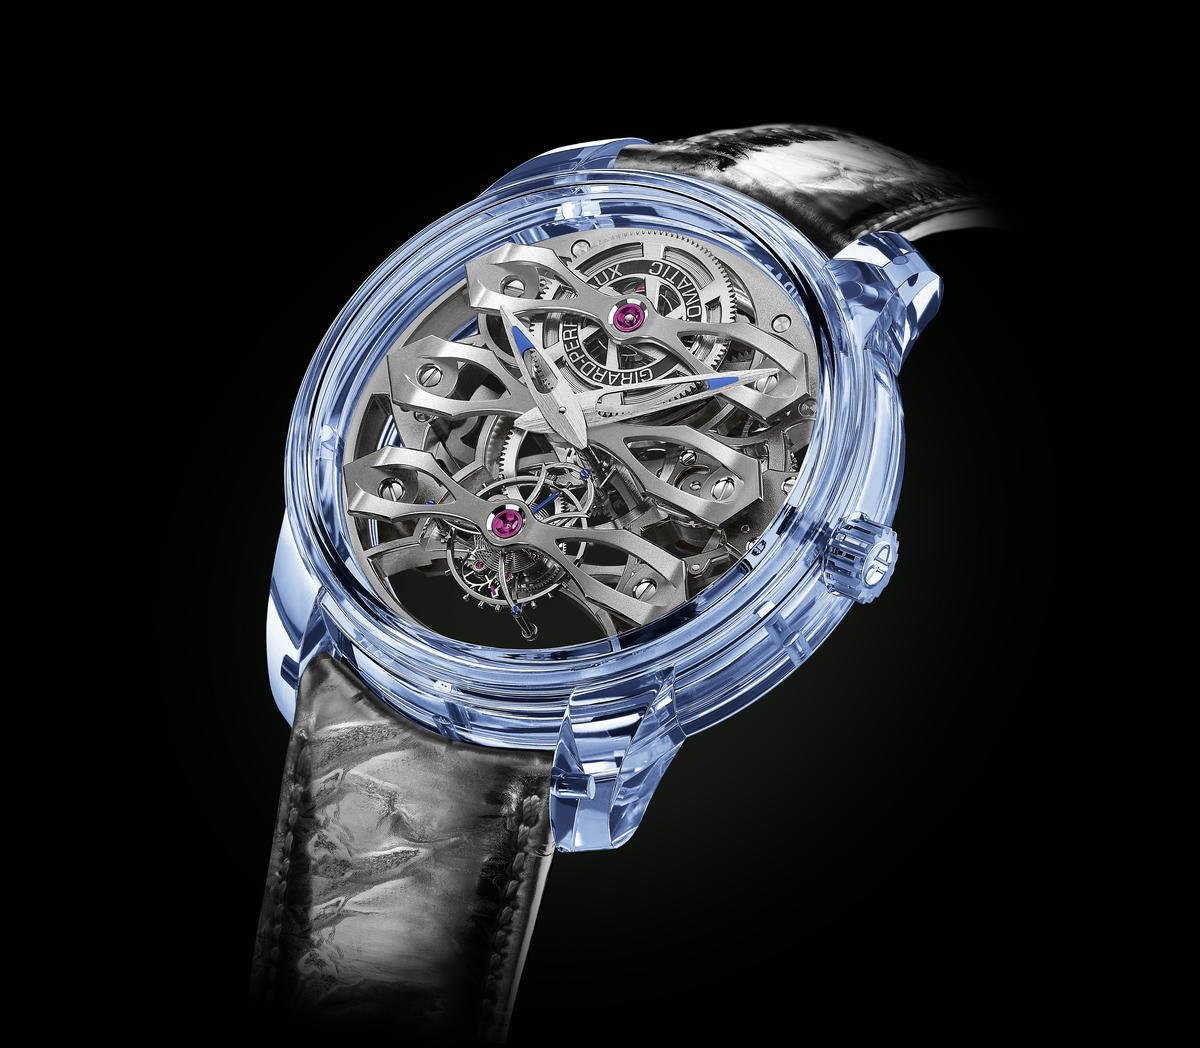 Made from a single block of blue sapphire the $274,000 Girard-Perregaux Quasar Azure watch is an absolute work of art : Luxurylaunches